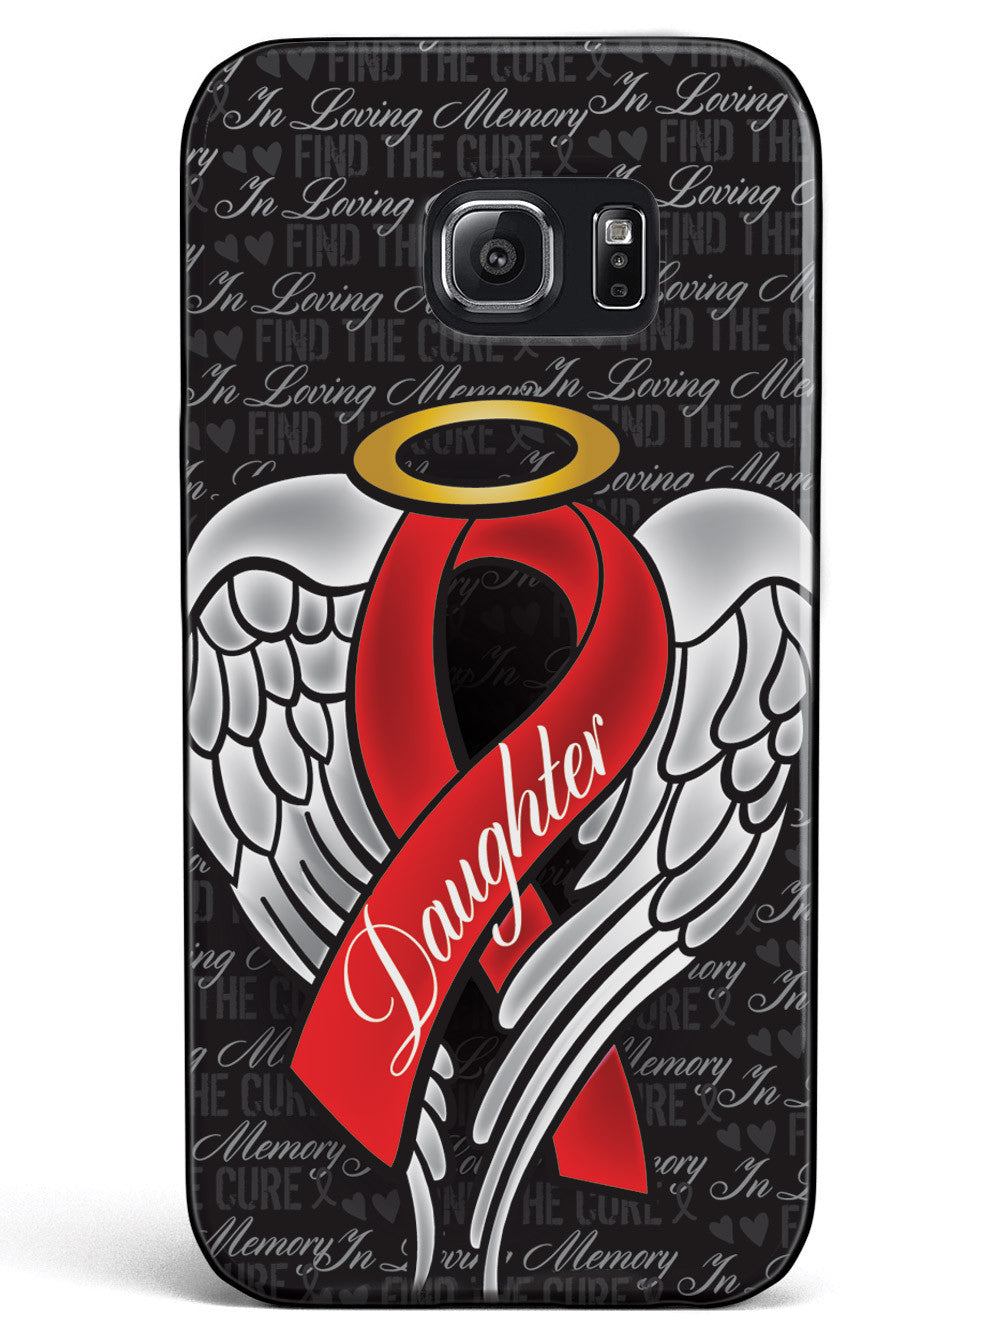 In Loving Memory of My Daughter - Red Ribbon Case